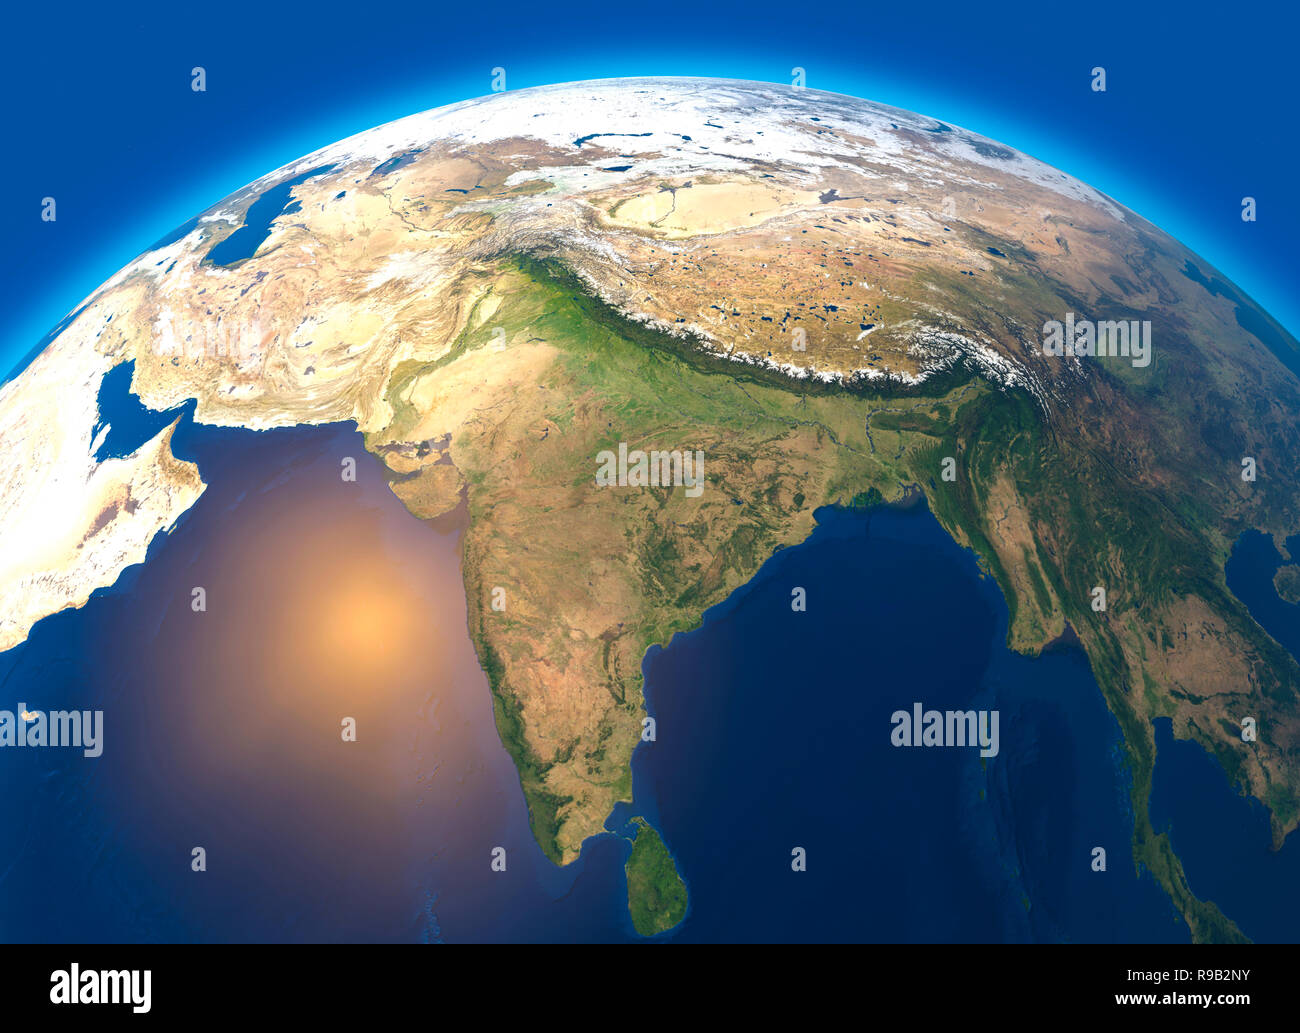 India Map Satellite View Physical map of the world, satellite view of India. Asia. Globe